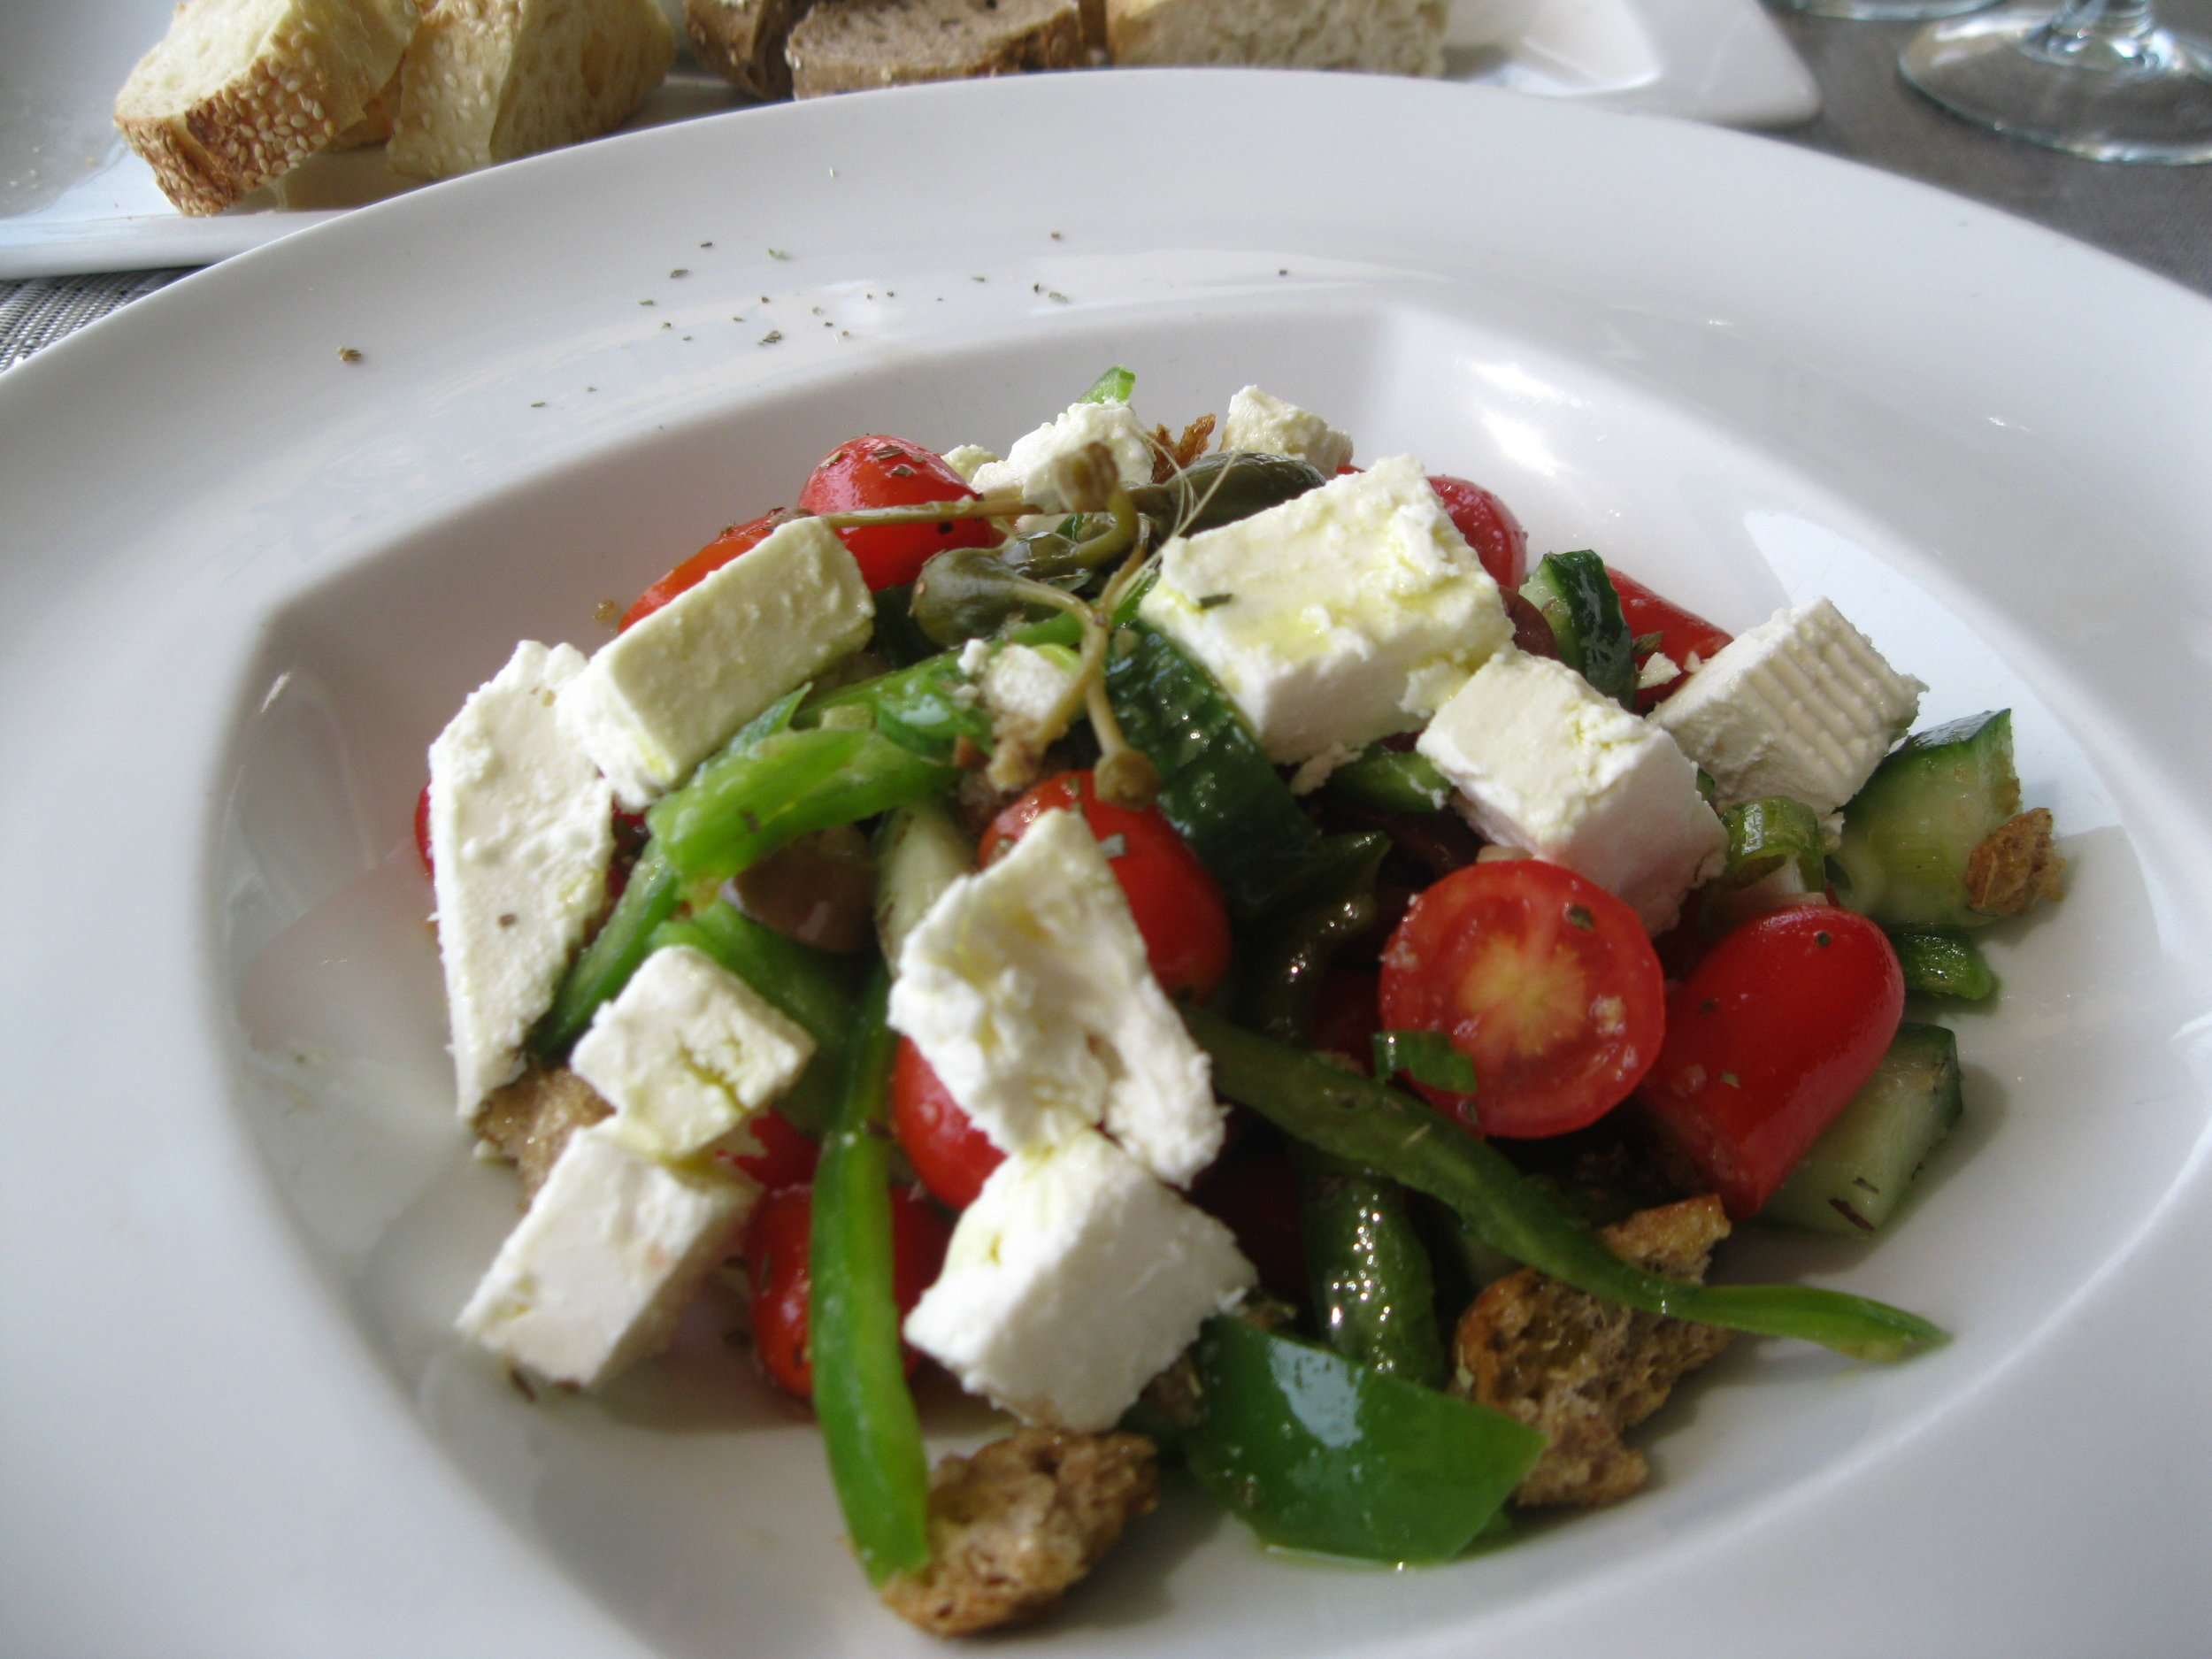 A staple of the Greek diet – a salad of feta and tomatoes, this one prepared at the St. George Lycabettus Boutique Hotel in Athens. Photograph by Georgette Gouveia.